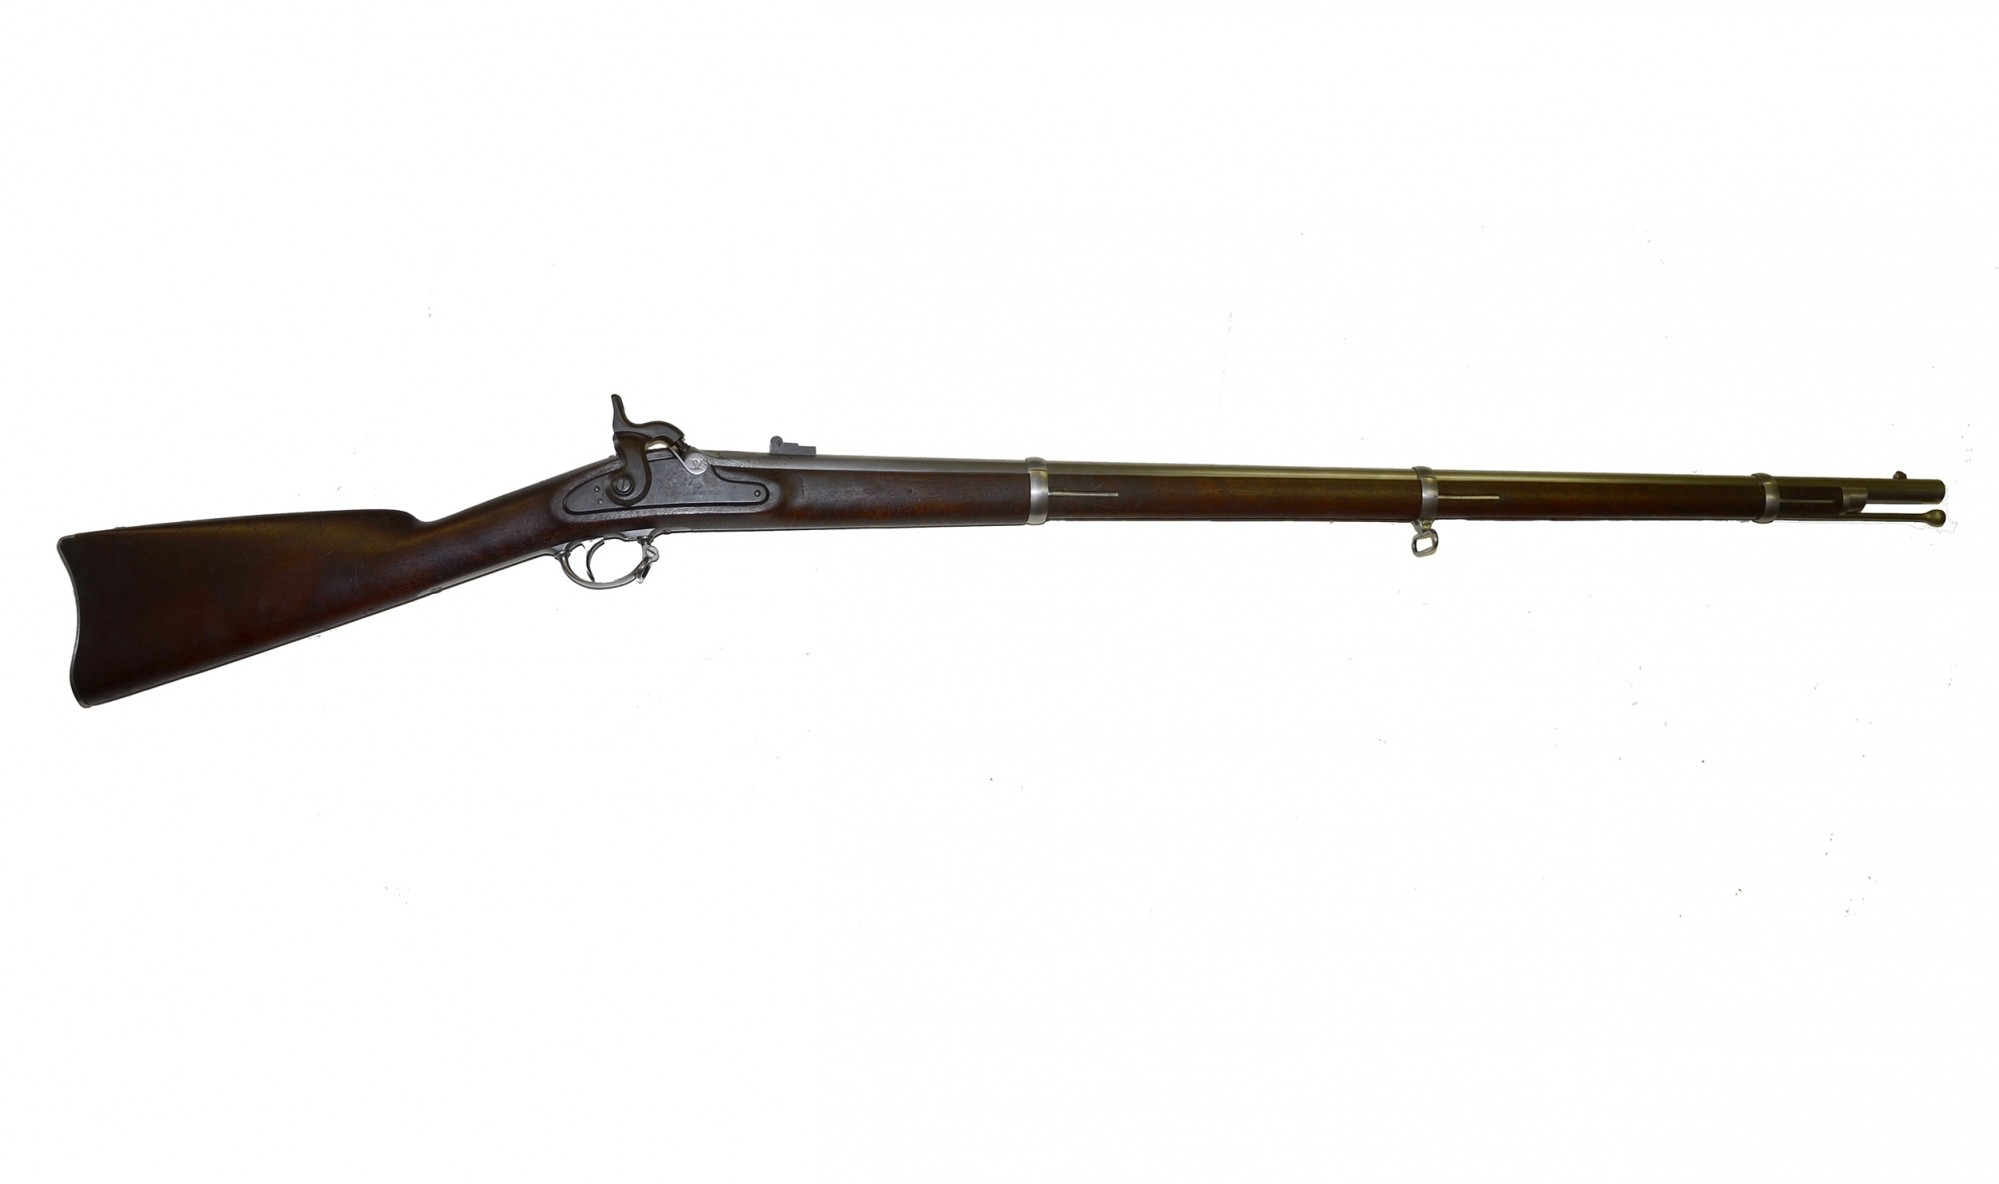 SPRINGFIELD M1863 TYPE II MUSKET DATED 1864